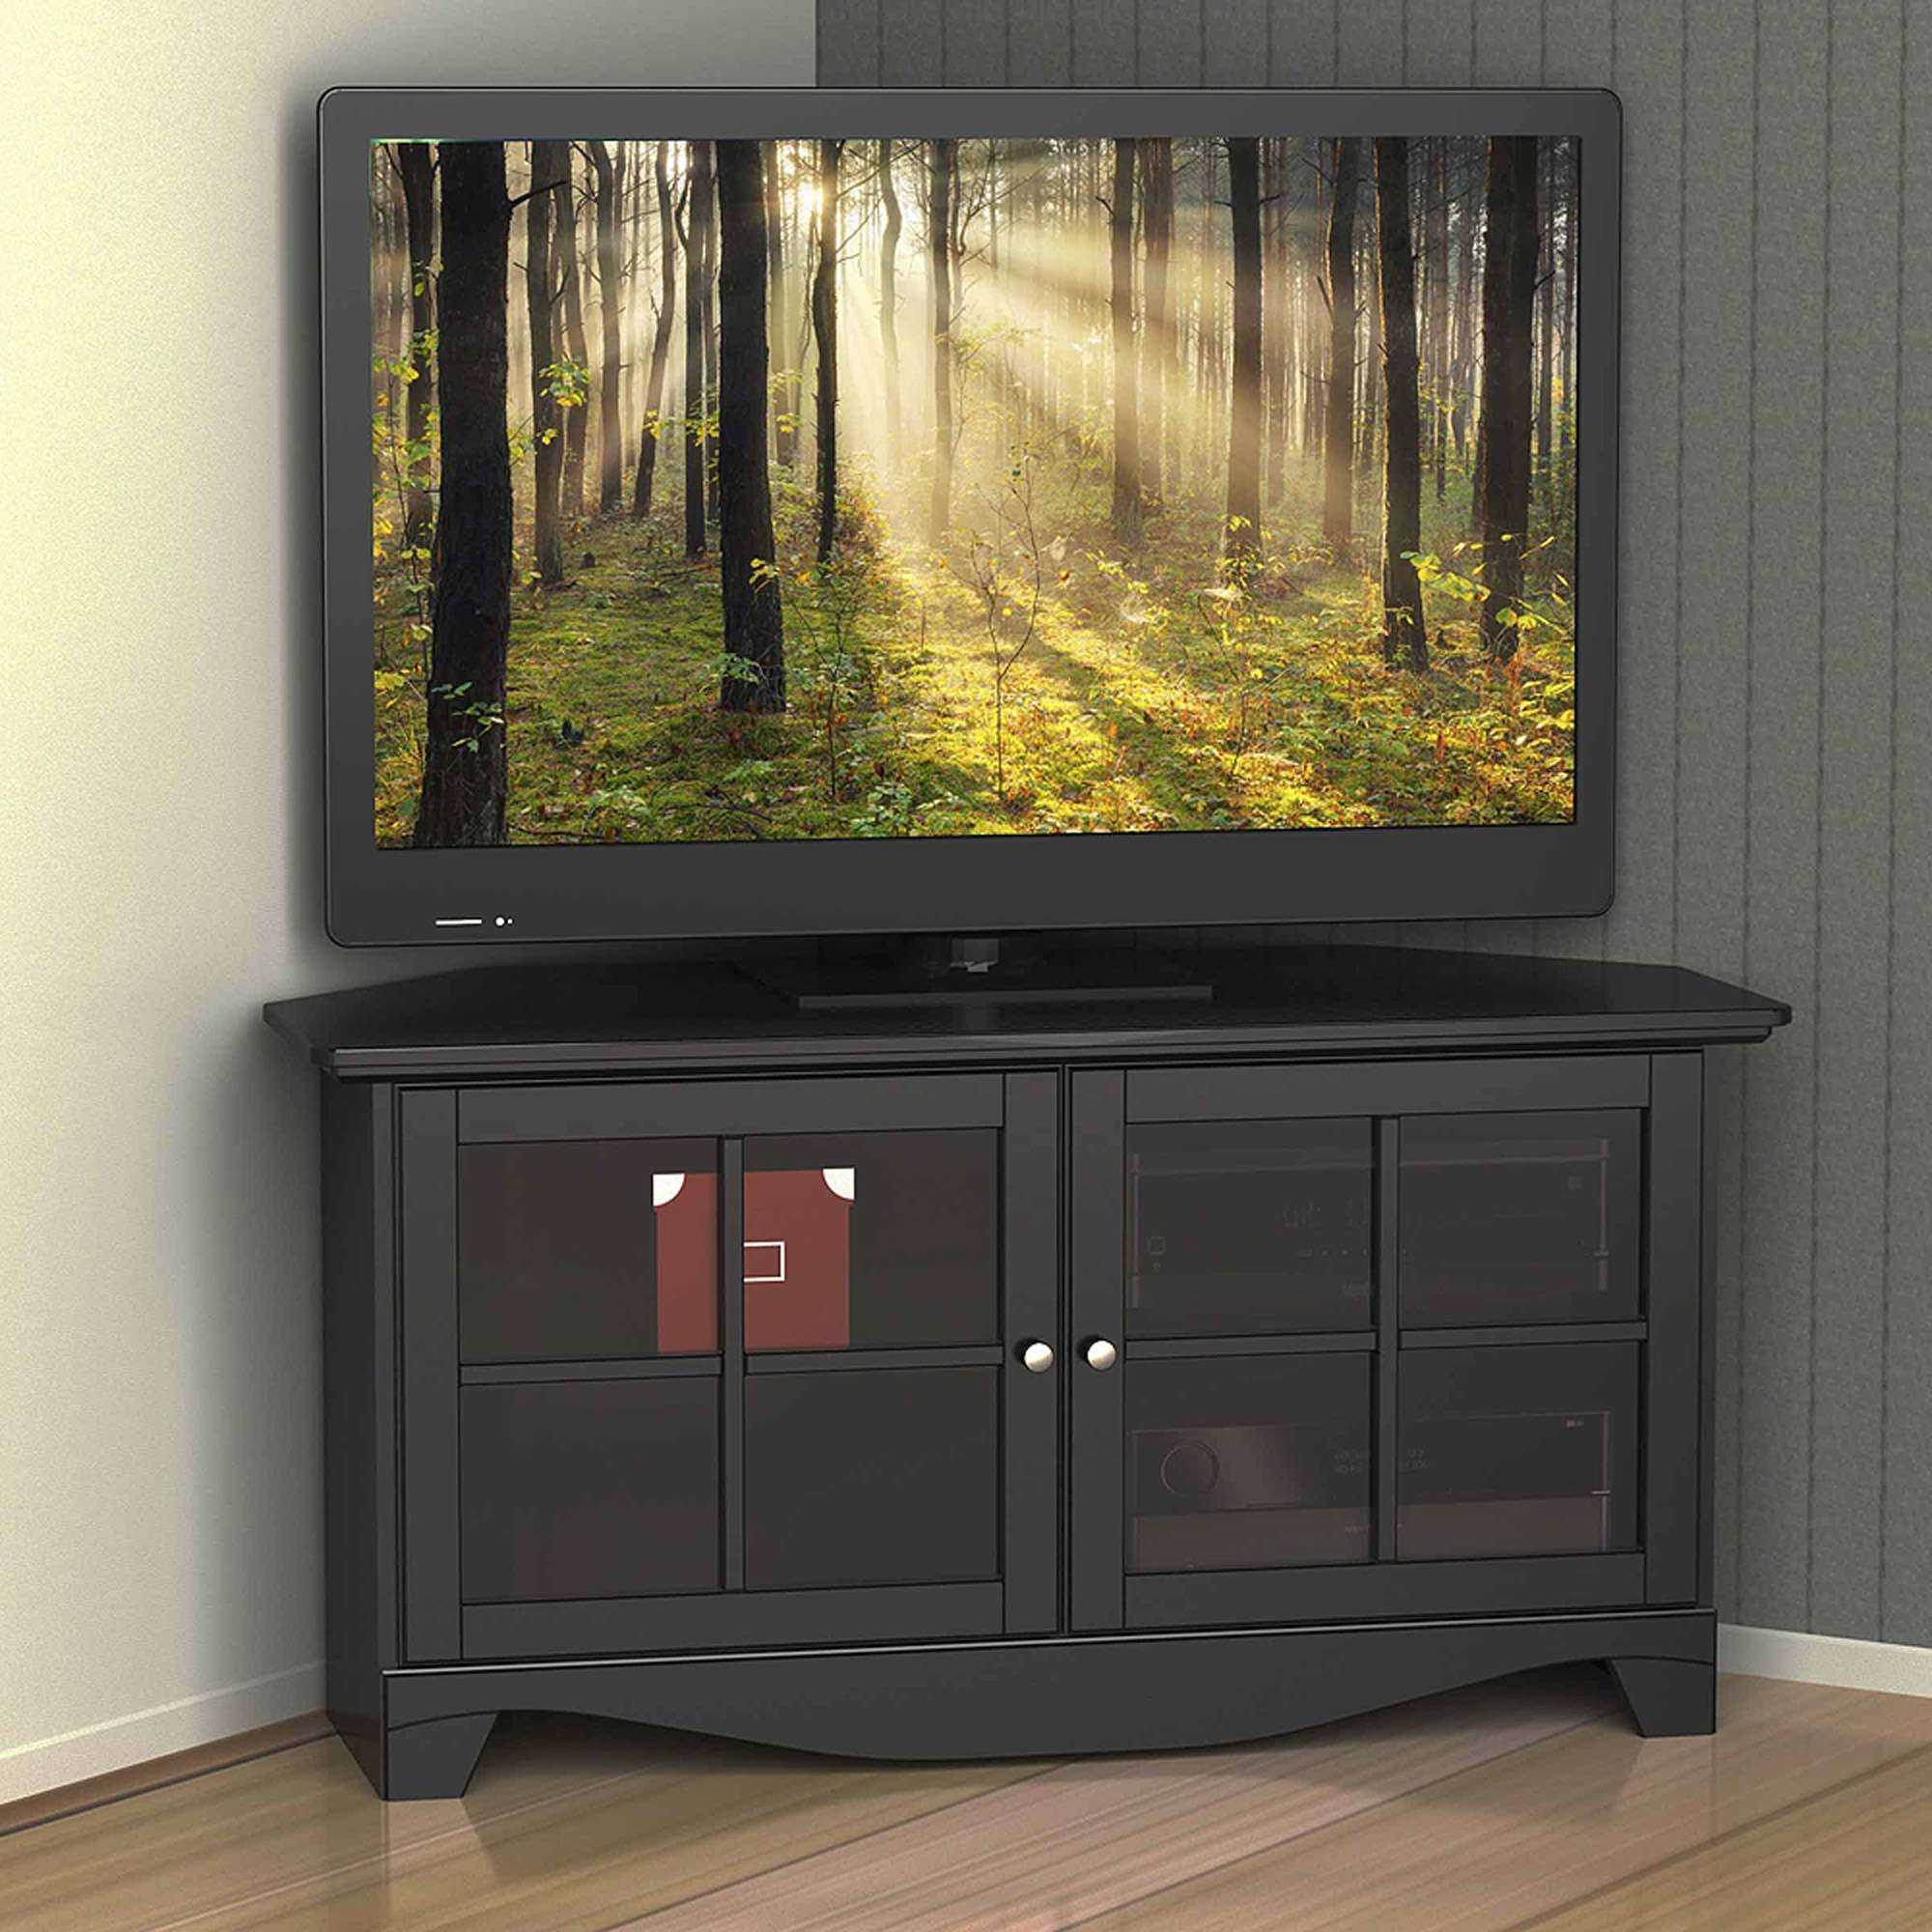 Nexera Pinnacle Black 2 Door Corner Tv Stand For Tvs Up To 49 For Corner Tv Stands (View 11 of 15)